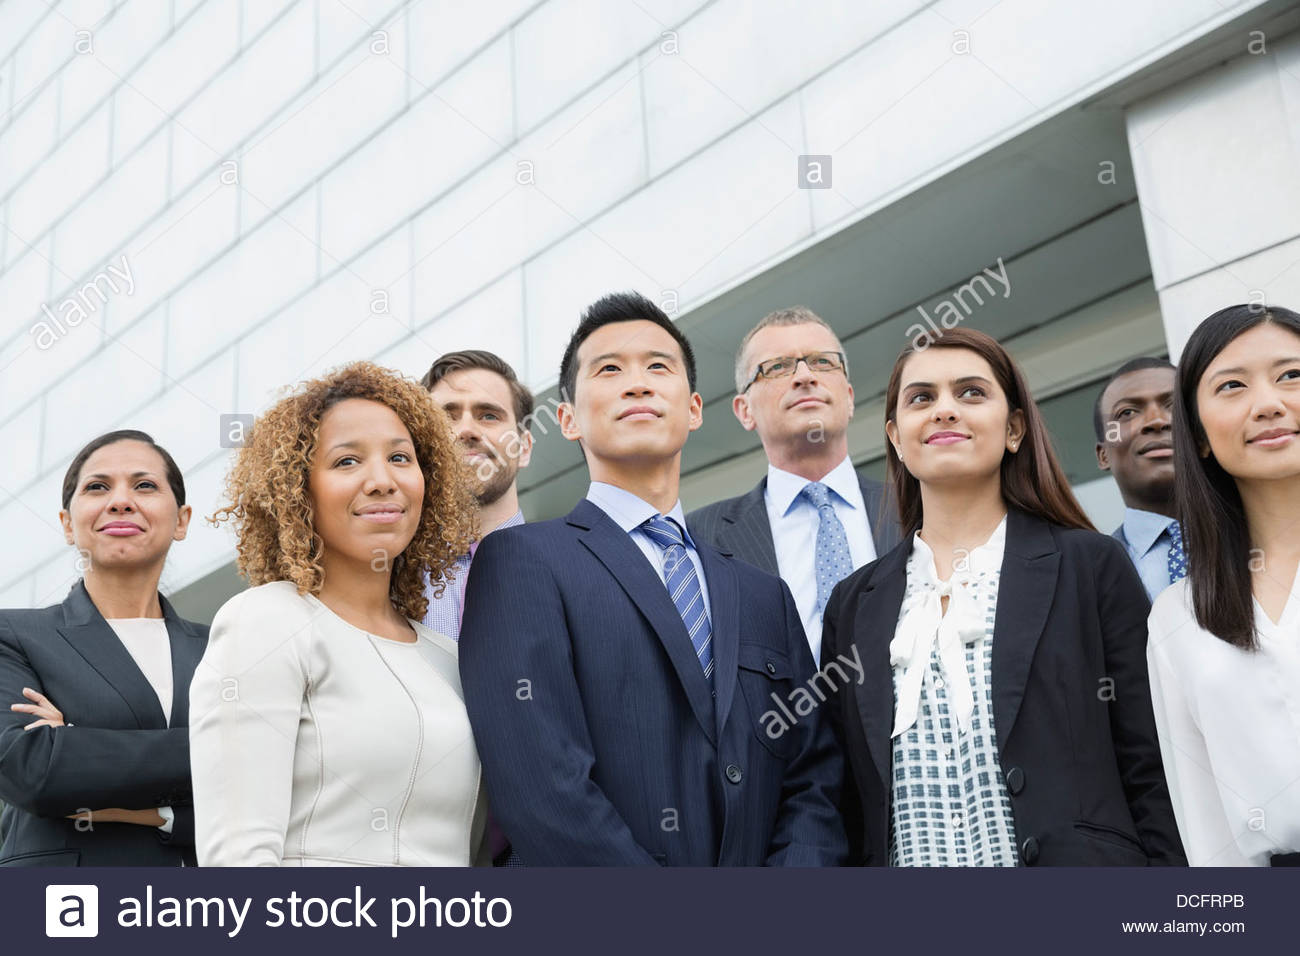 Group of business people standing outdoors - Stock Image